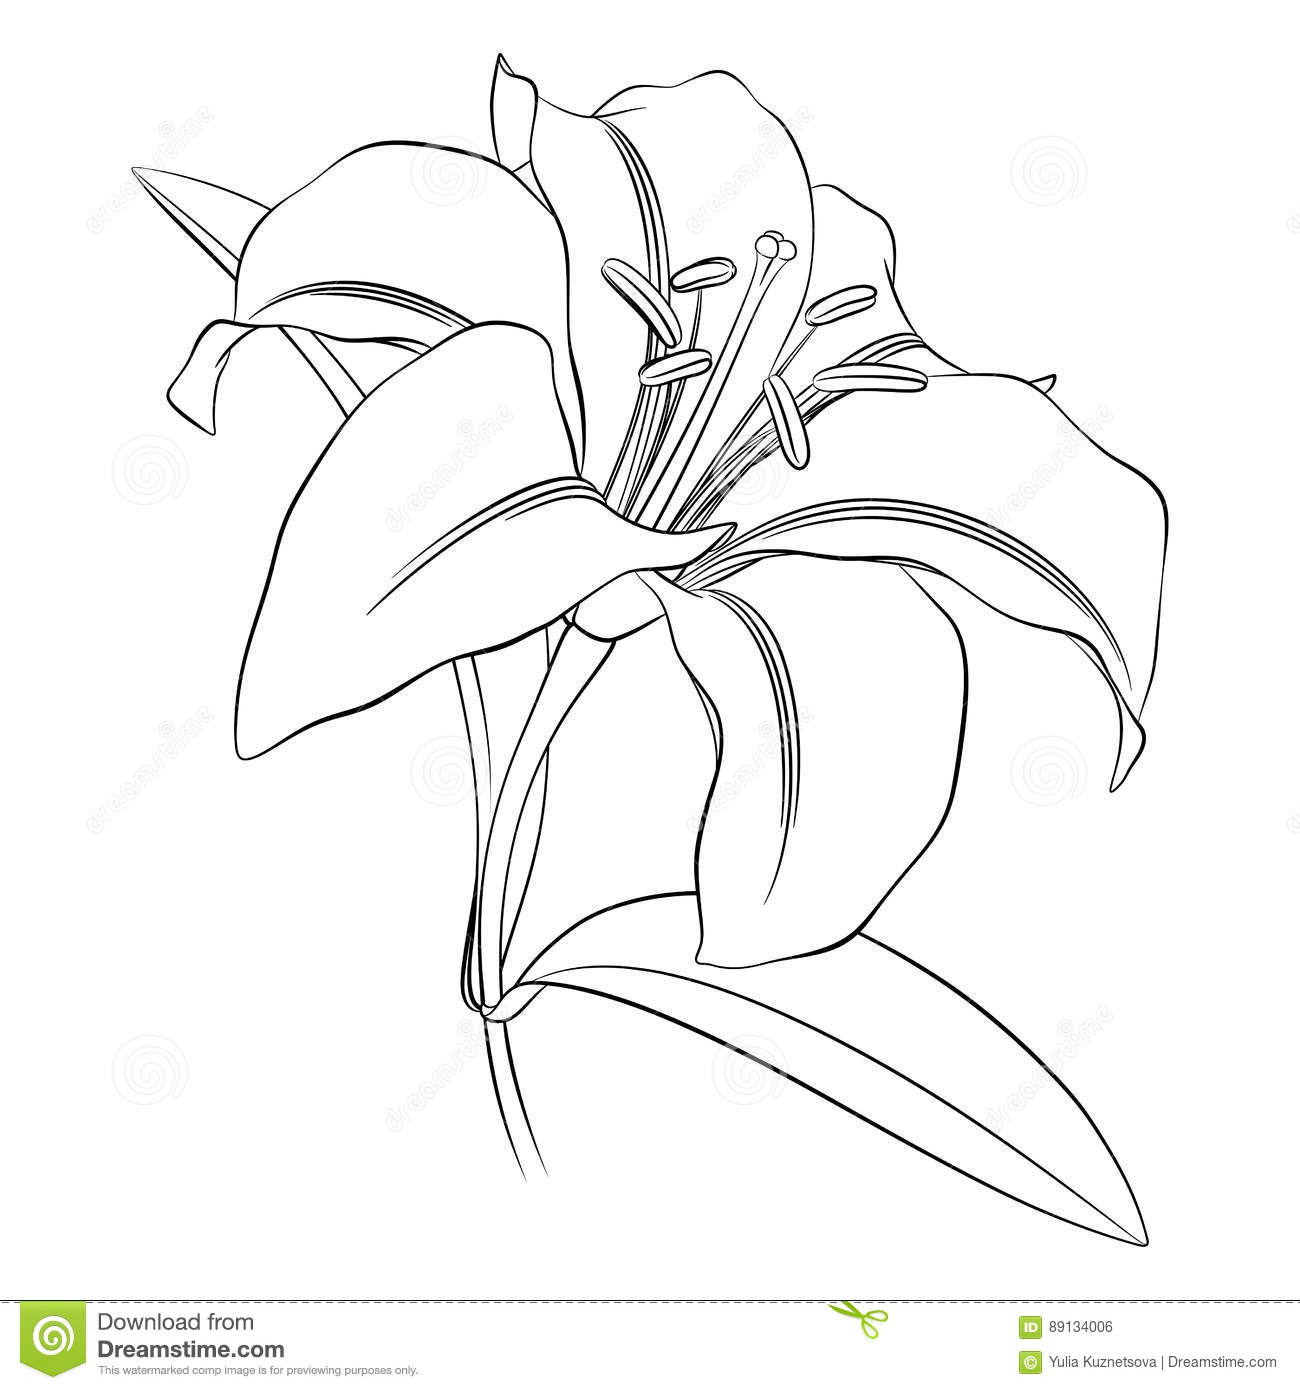 Black outline of a lily flower on a white background stock vector black outline of a lily flower on a white background izmirmasajfo